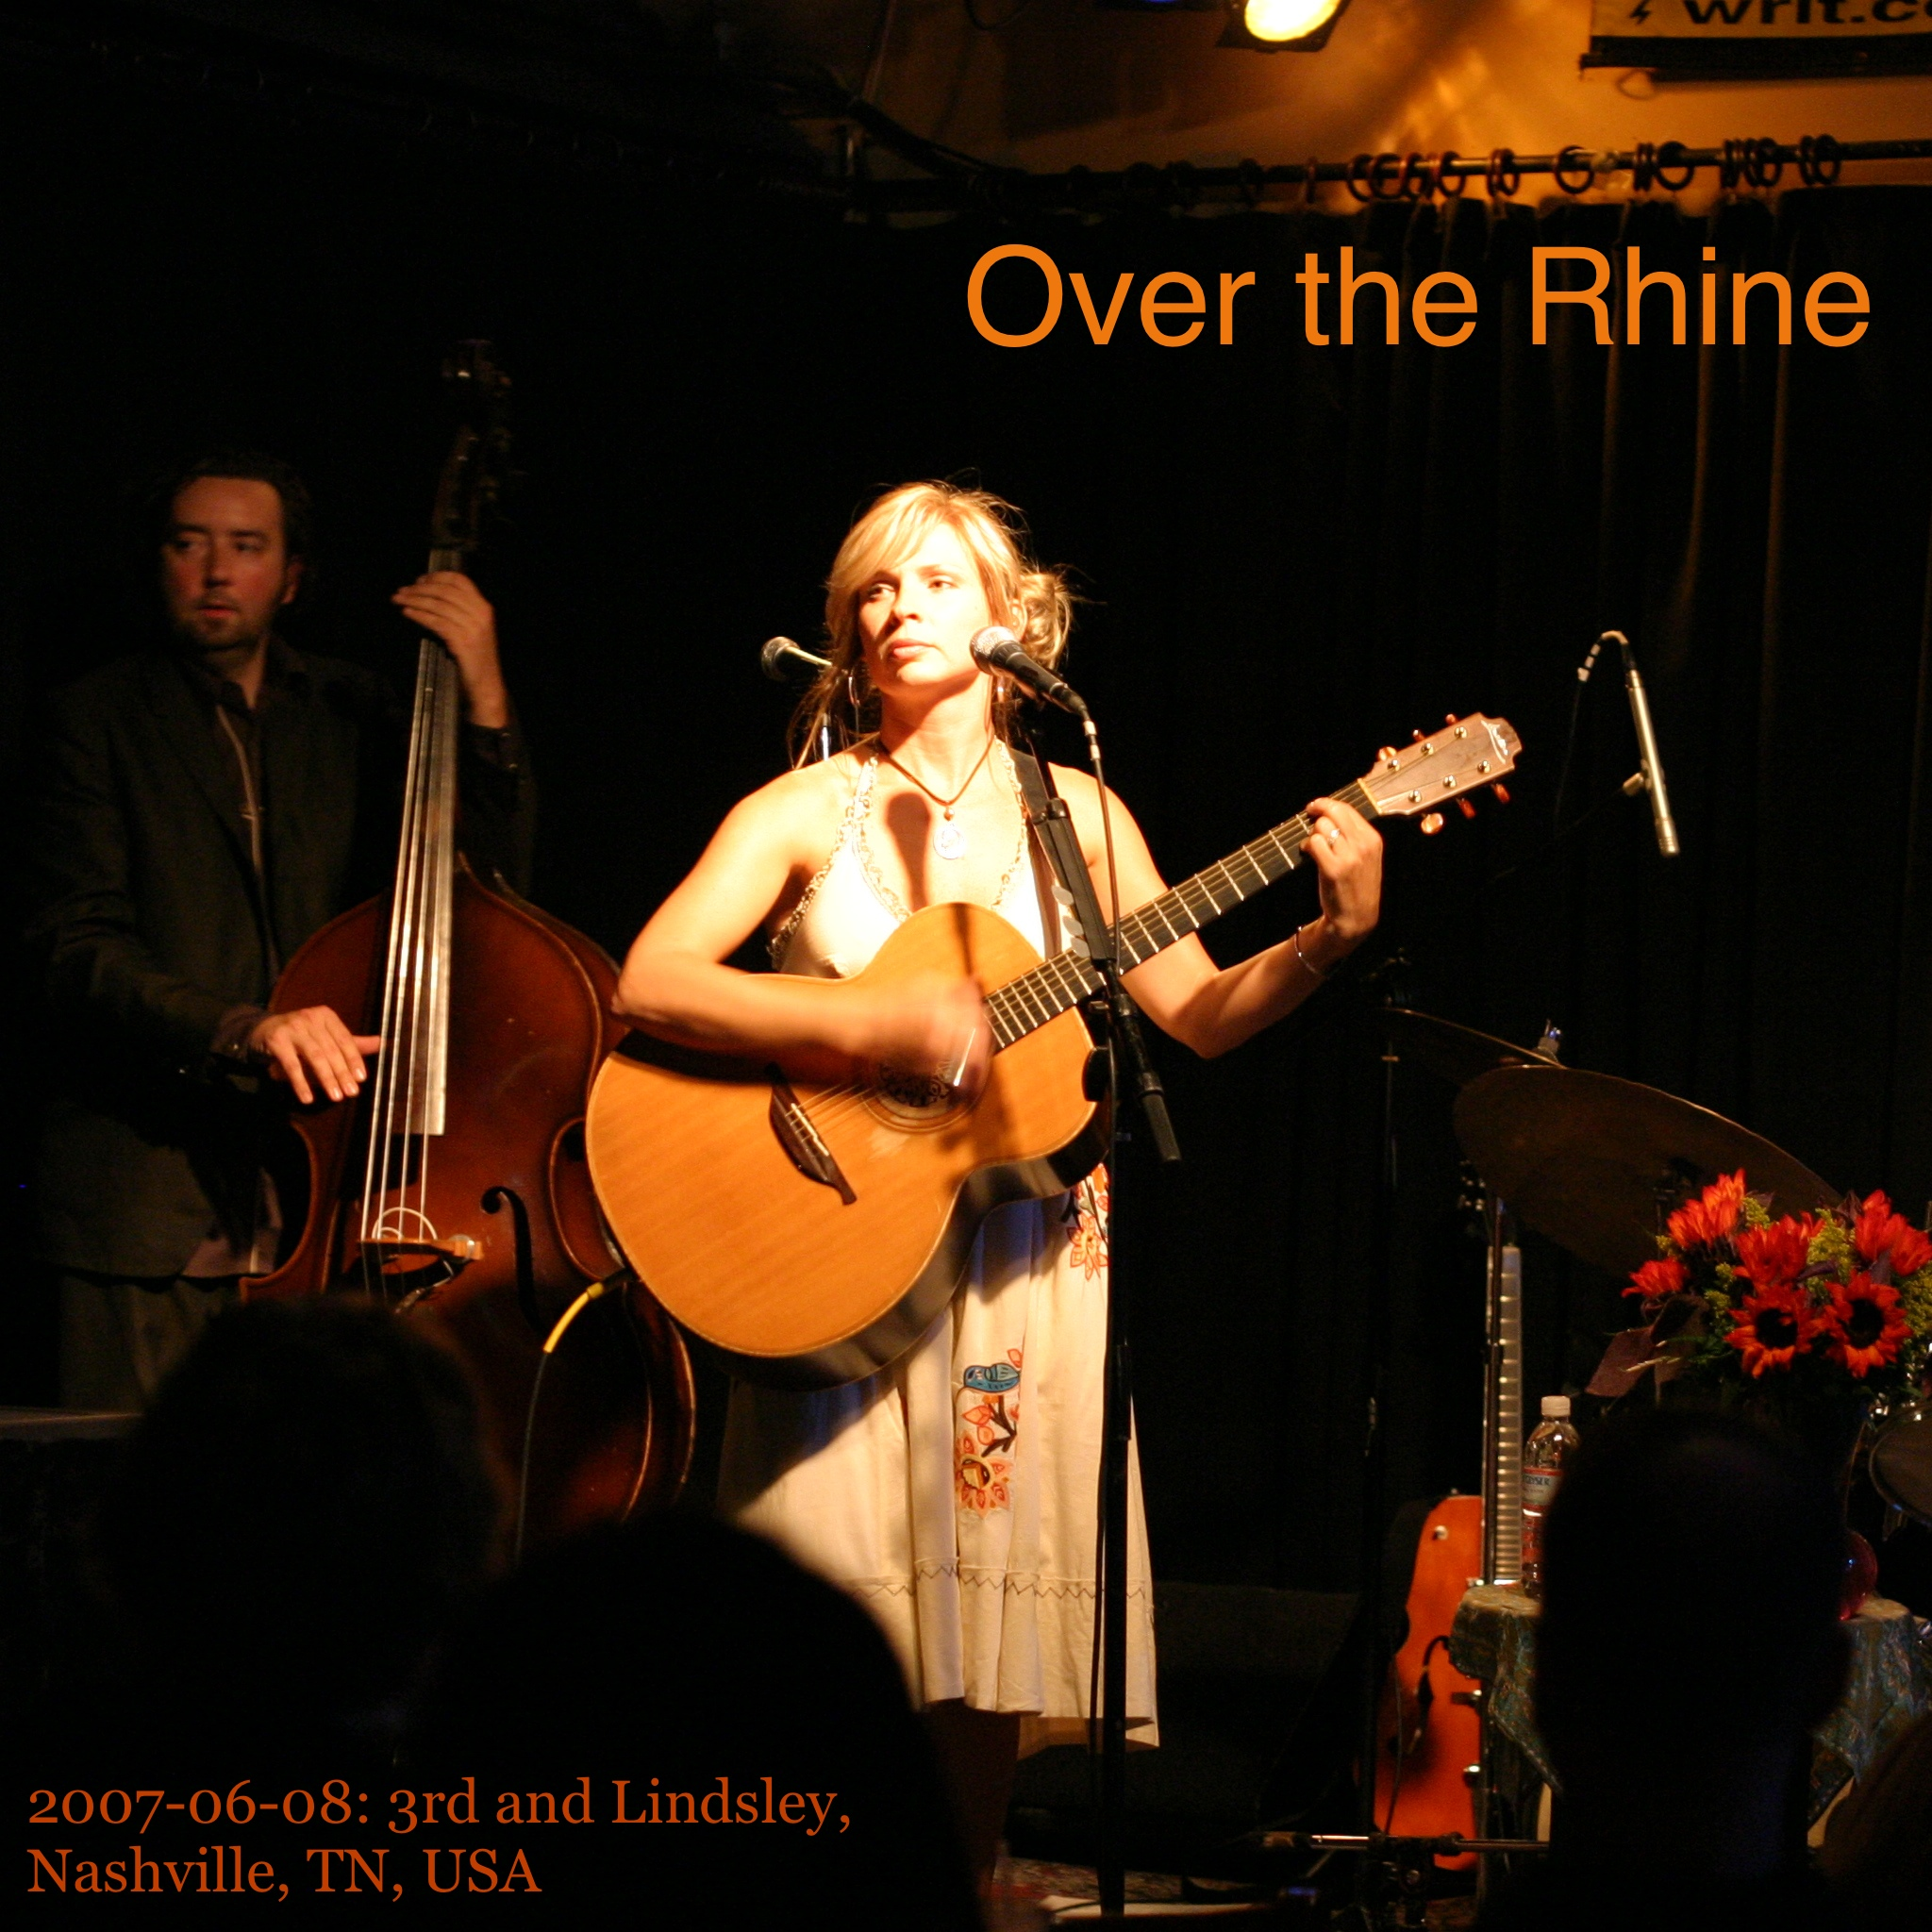 Over the Rhine - 20070608 - cover